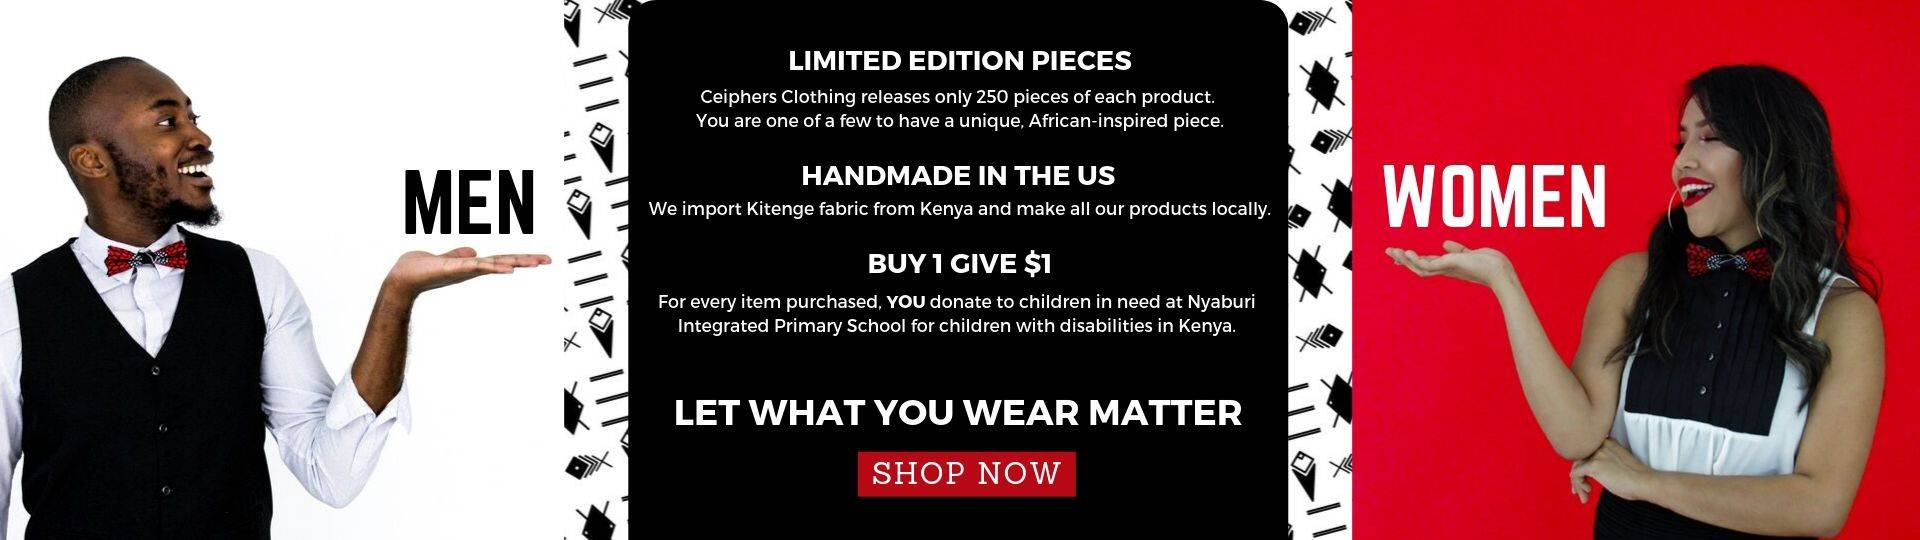 African Inspired Clothing, American Made - Ceiphers Clothing